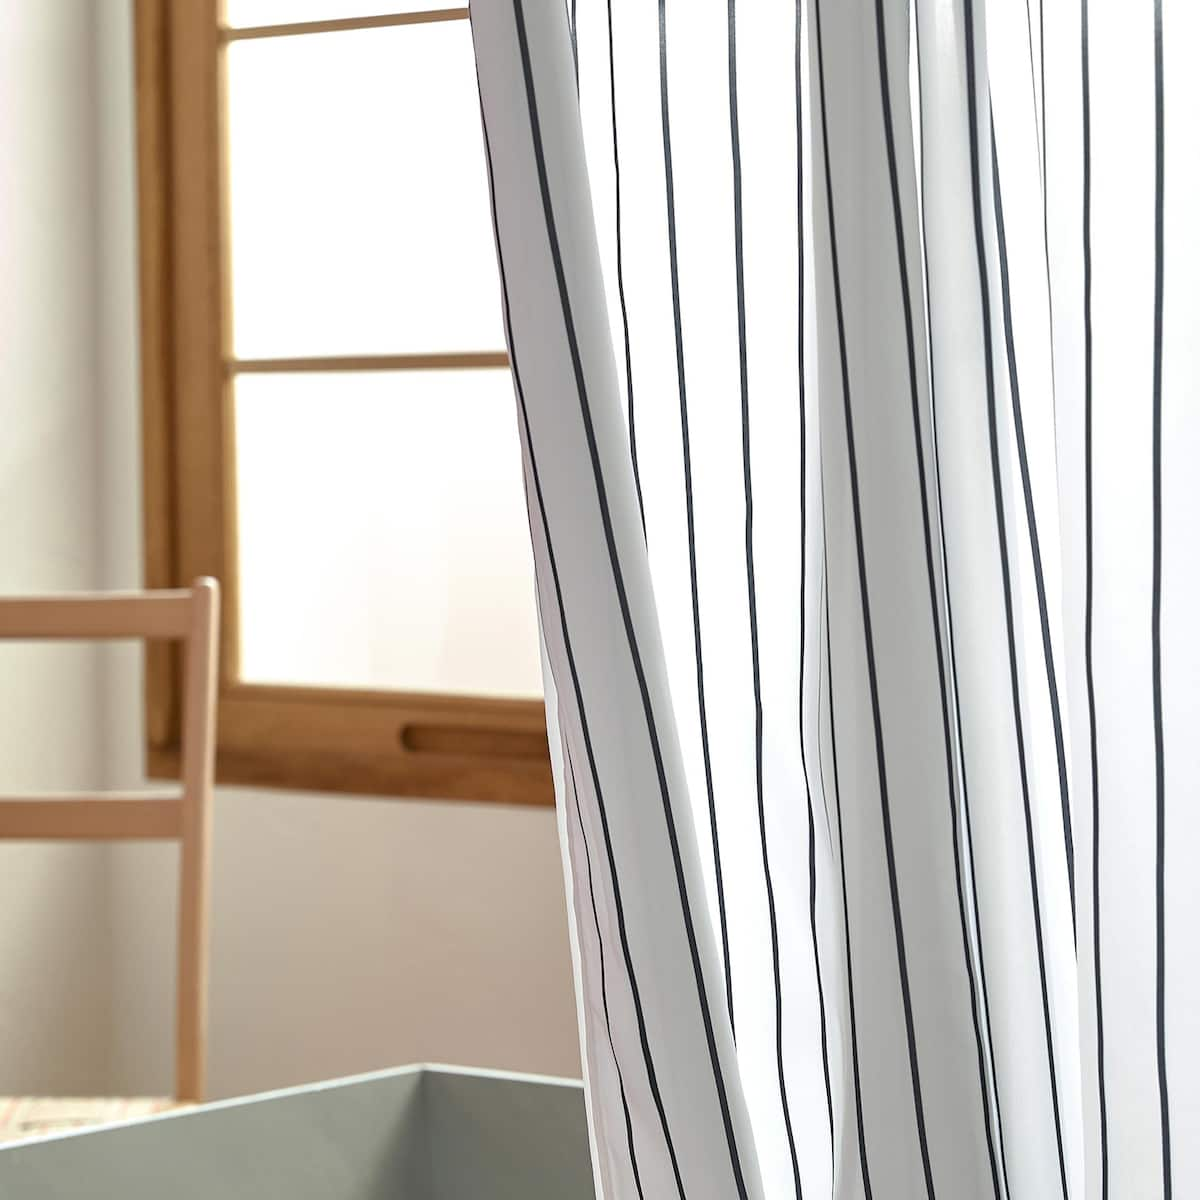 Image 4 Of The Product SHOWER CURTAIN WITH DARK STRIPES